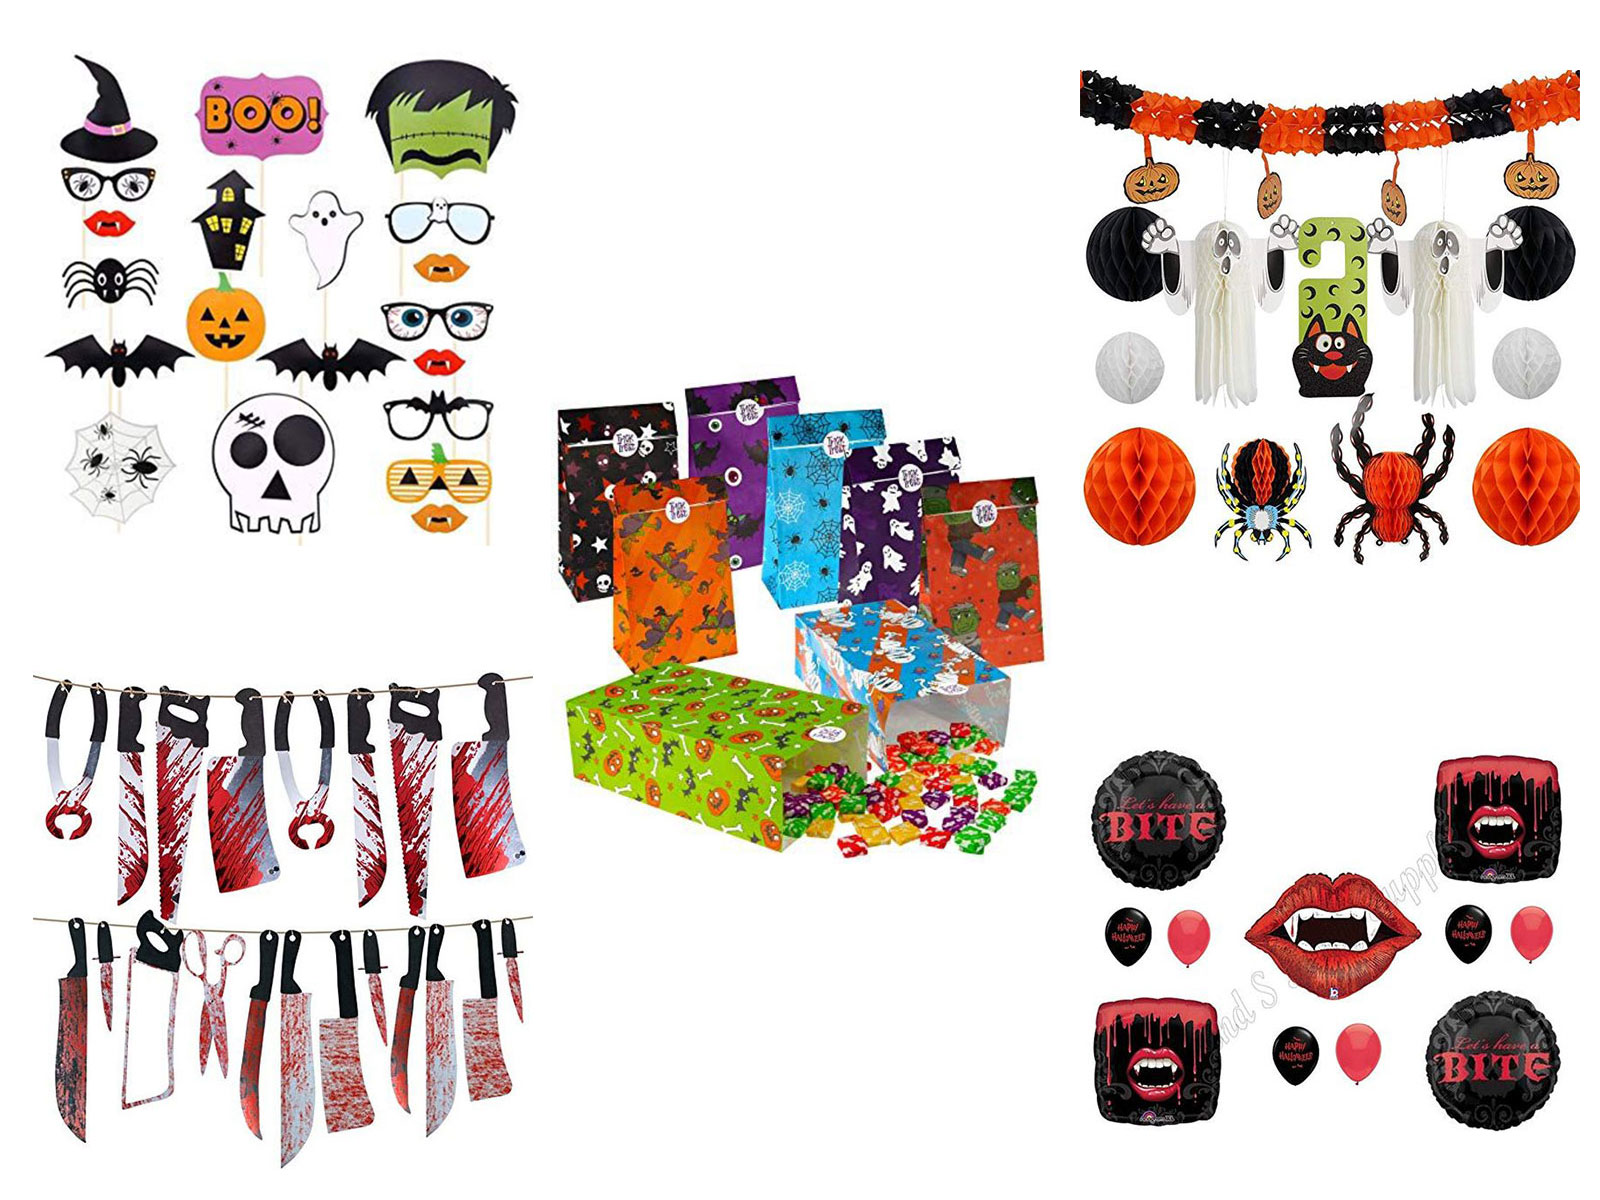 15-Halloween-Party-Props-Supplies-Decoration-Ideas-2019-F